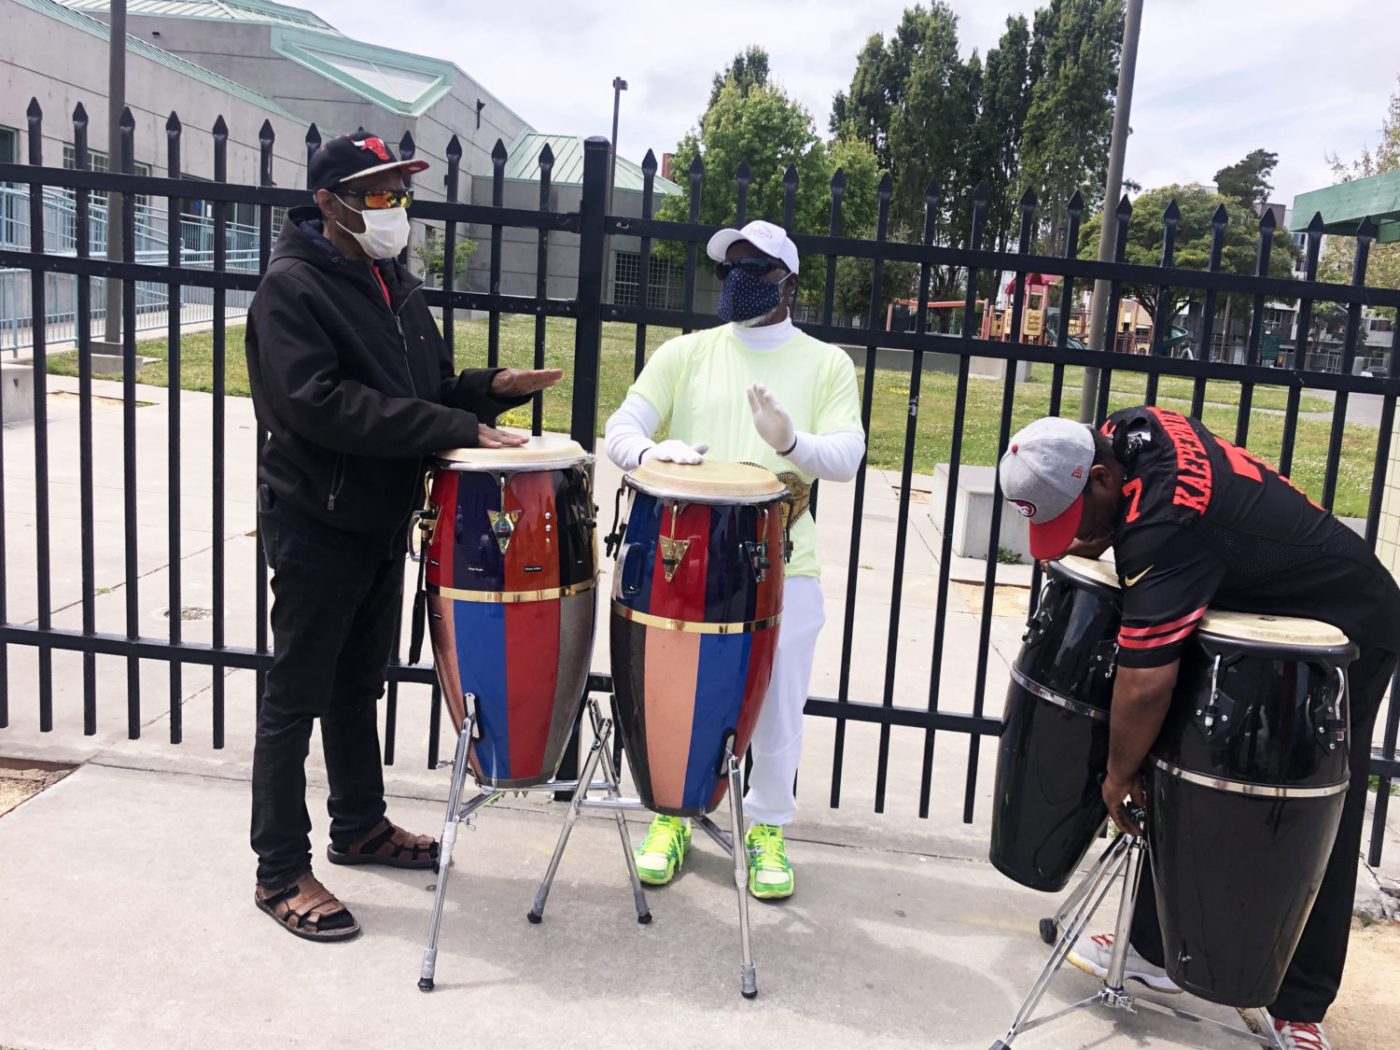 Beds-4-Bayview-Hunters-Point-natives-Tony-Mayfield-Jerome-Collins-Fred-play-conga-drums-for-MLK-Park-residents-almost-every-day-1400x1050, Community seizes MLK Park as immediate COVID relief for unhoused neighbors, Local News & Views